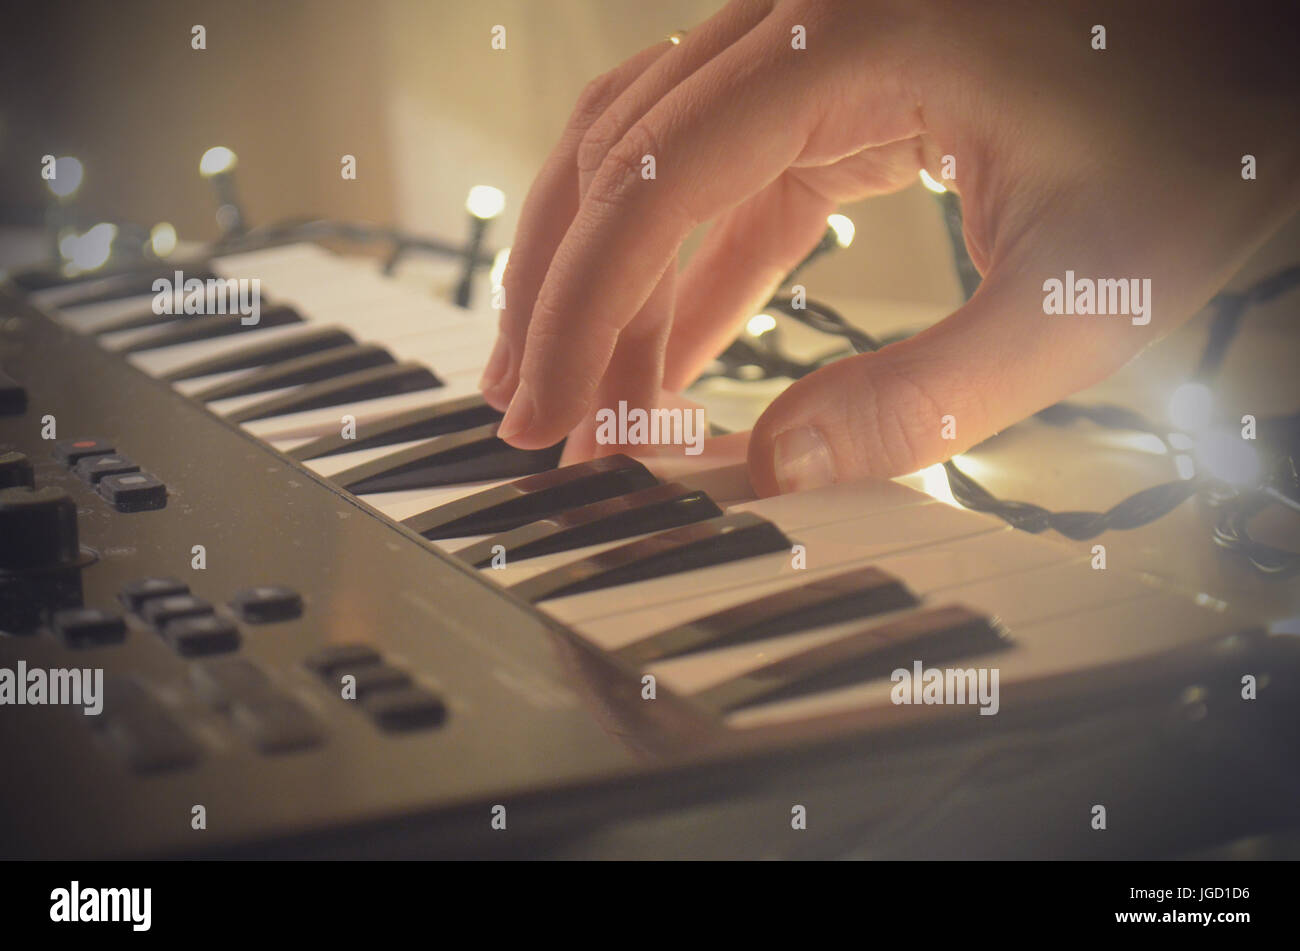 Woman hand playing Piano or electone midi keyboard, electronic musical synthesizer white and black key. - Stock Image